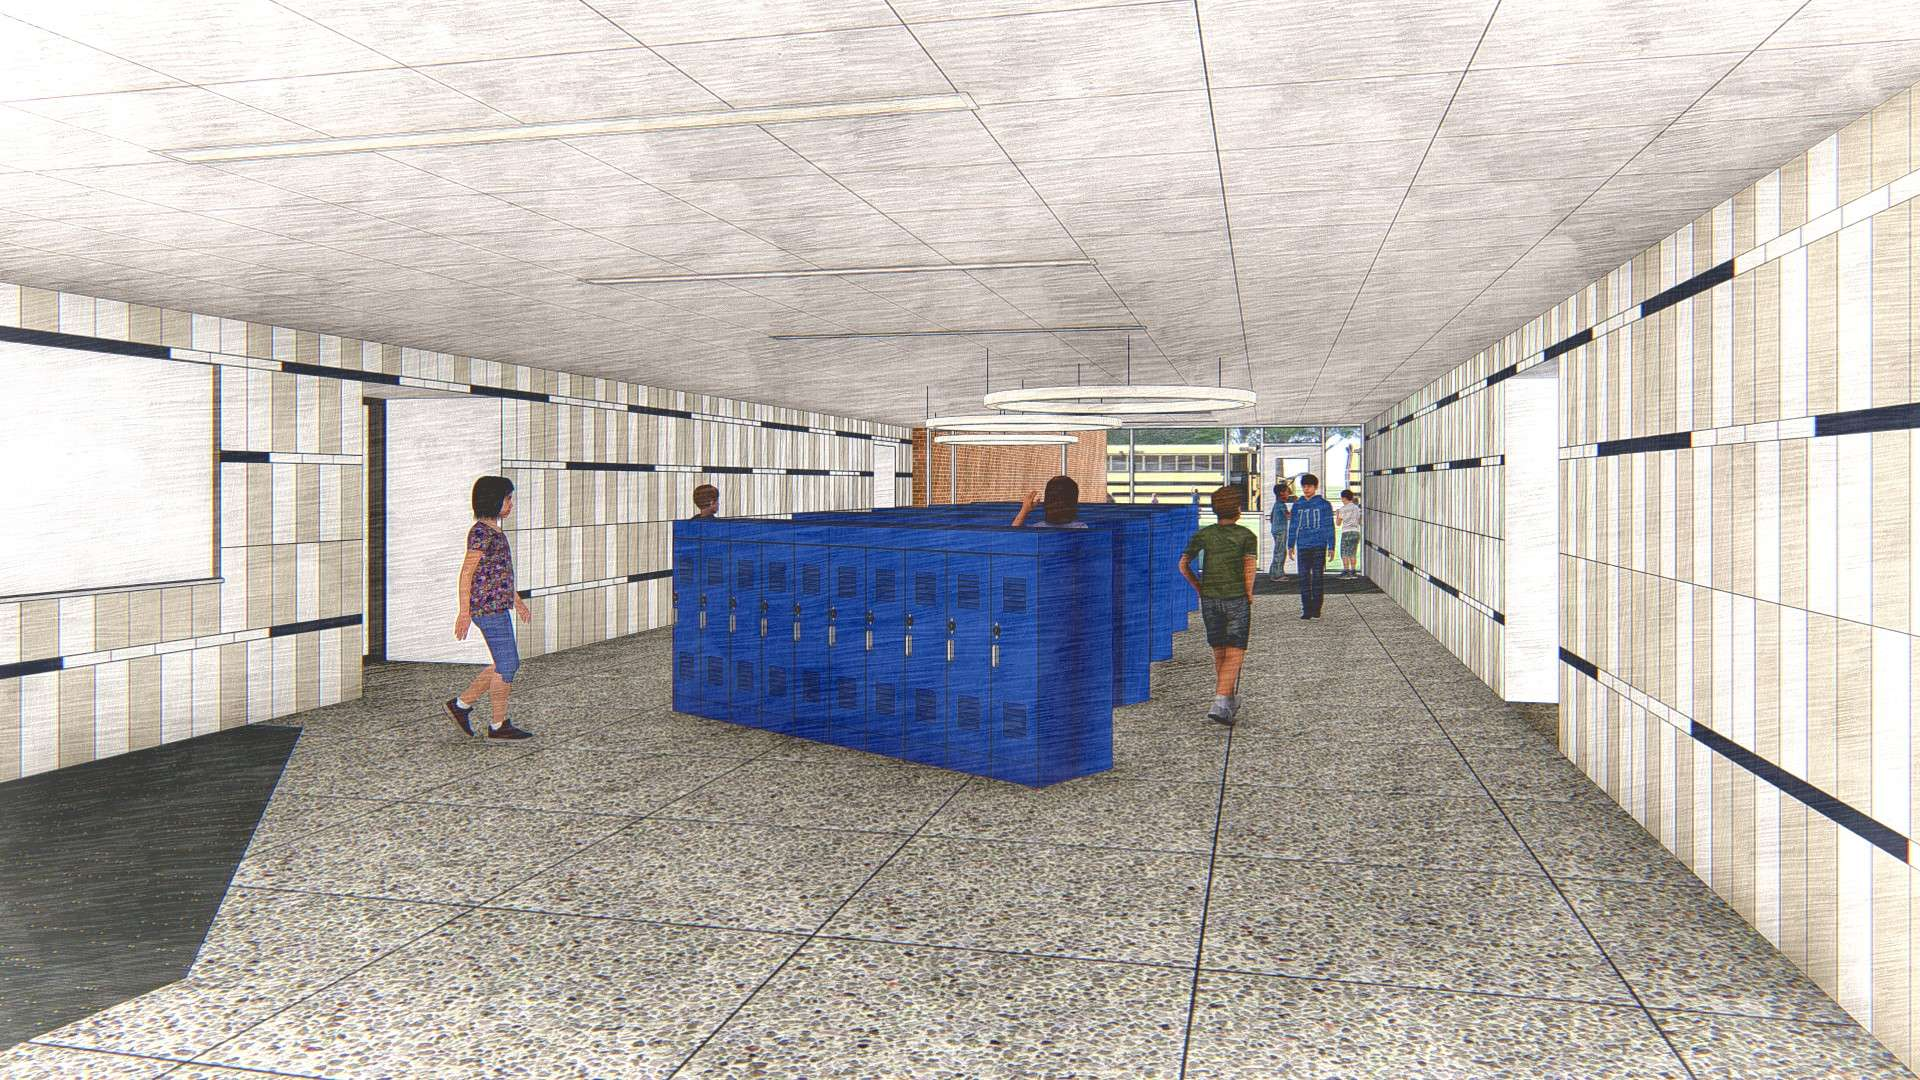 Middle School Interior Perspective Sketch